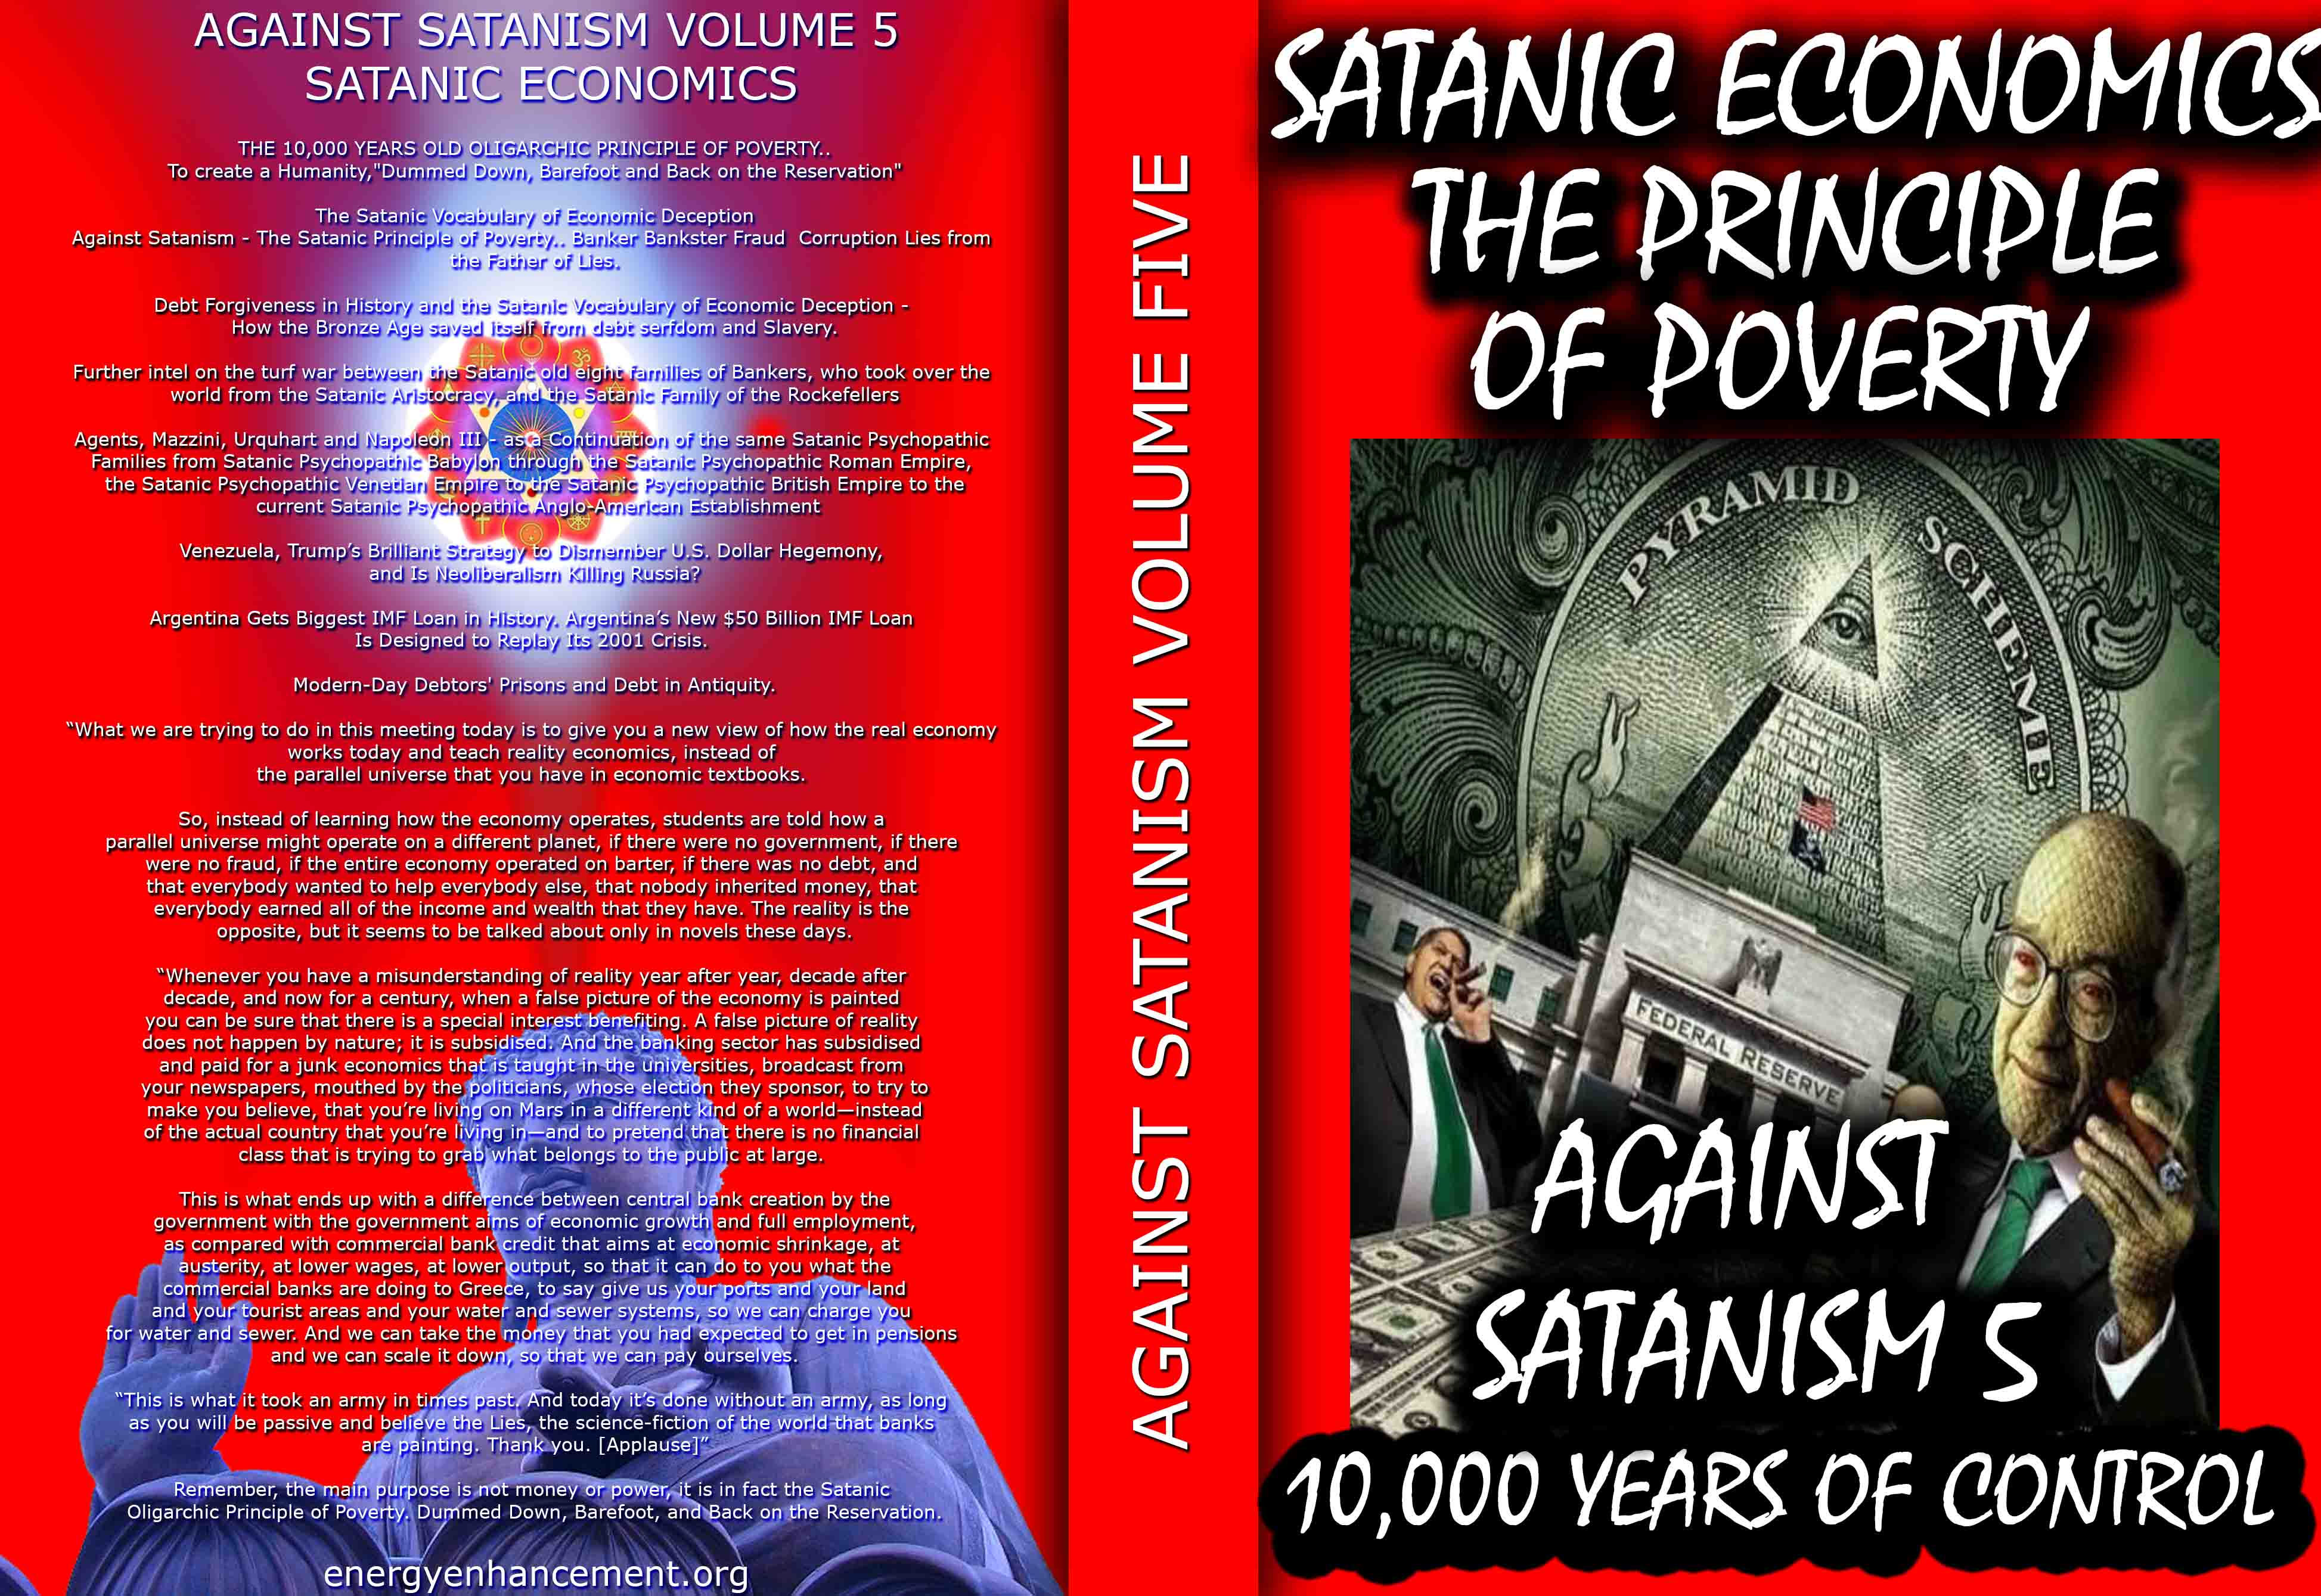 Description: Description: C:\wnew\Sacred-Energy\Against-Satanism-Volume-5\against-satanism-vol5.jpg